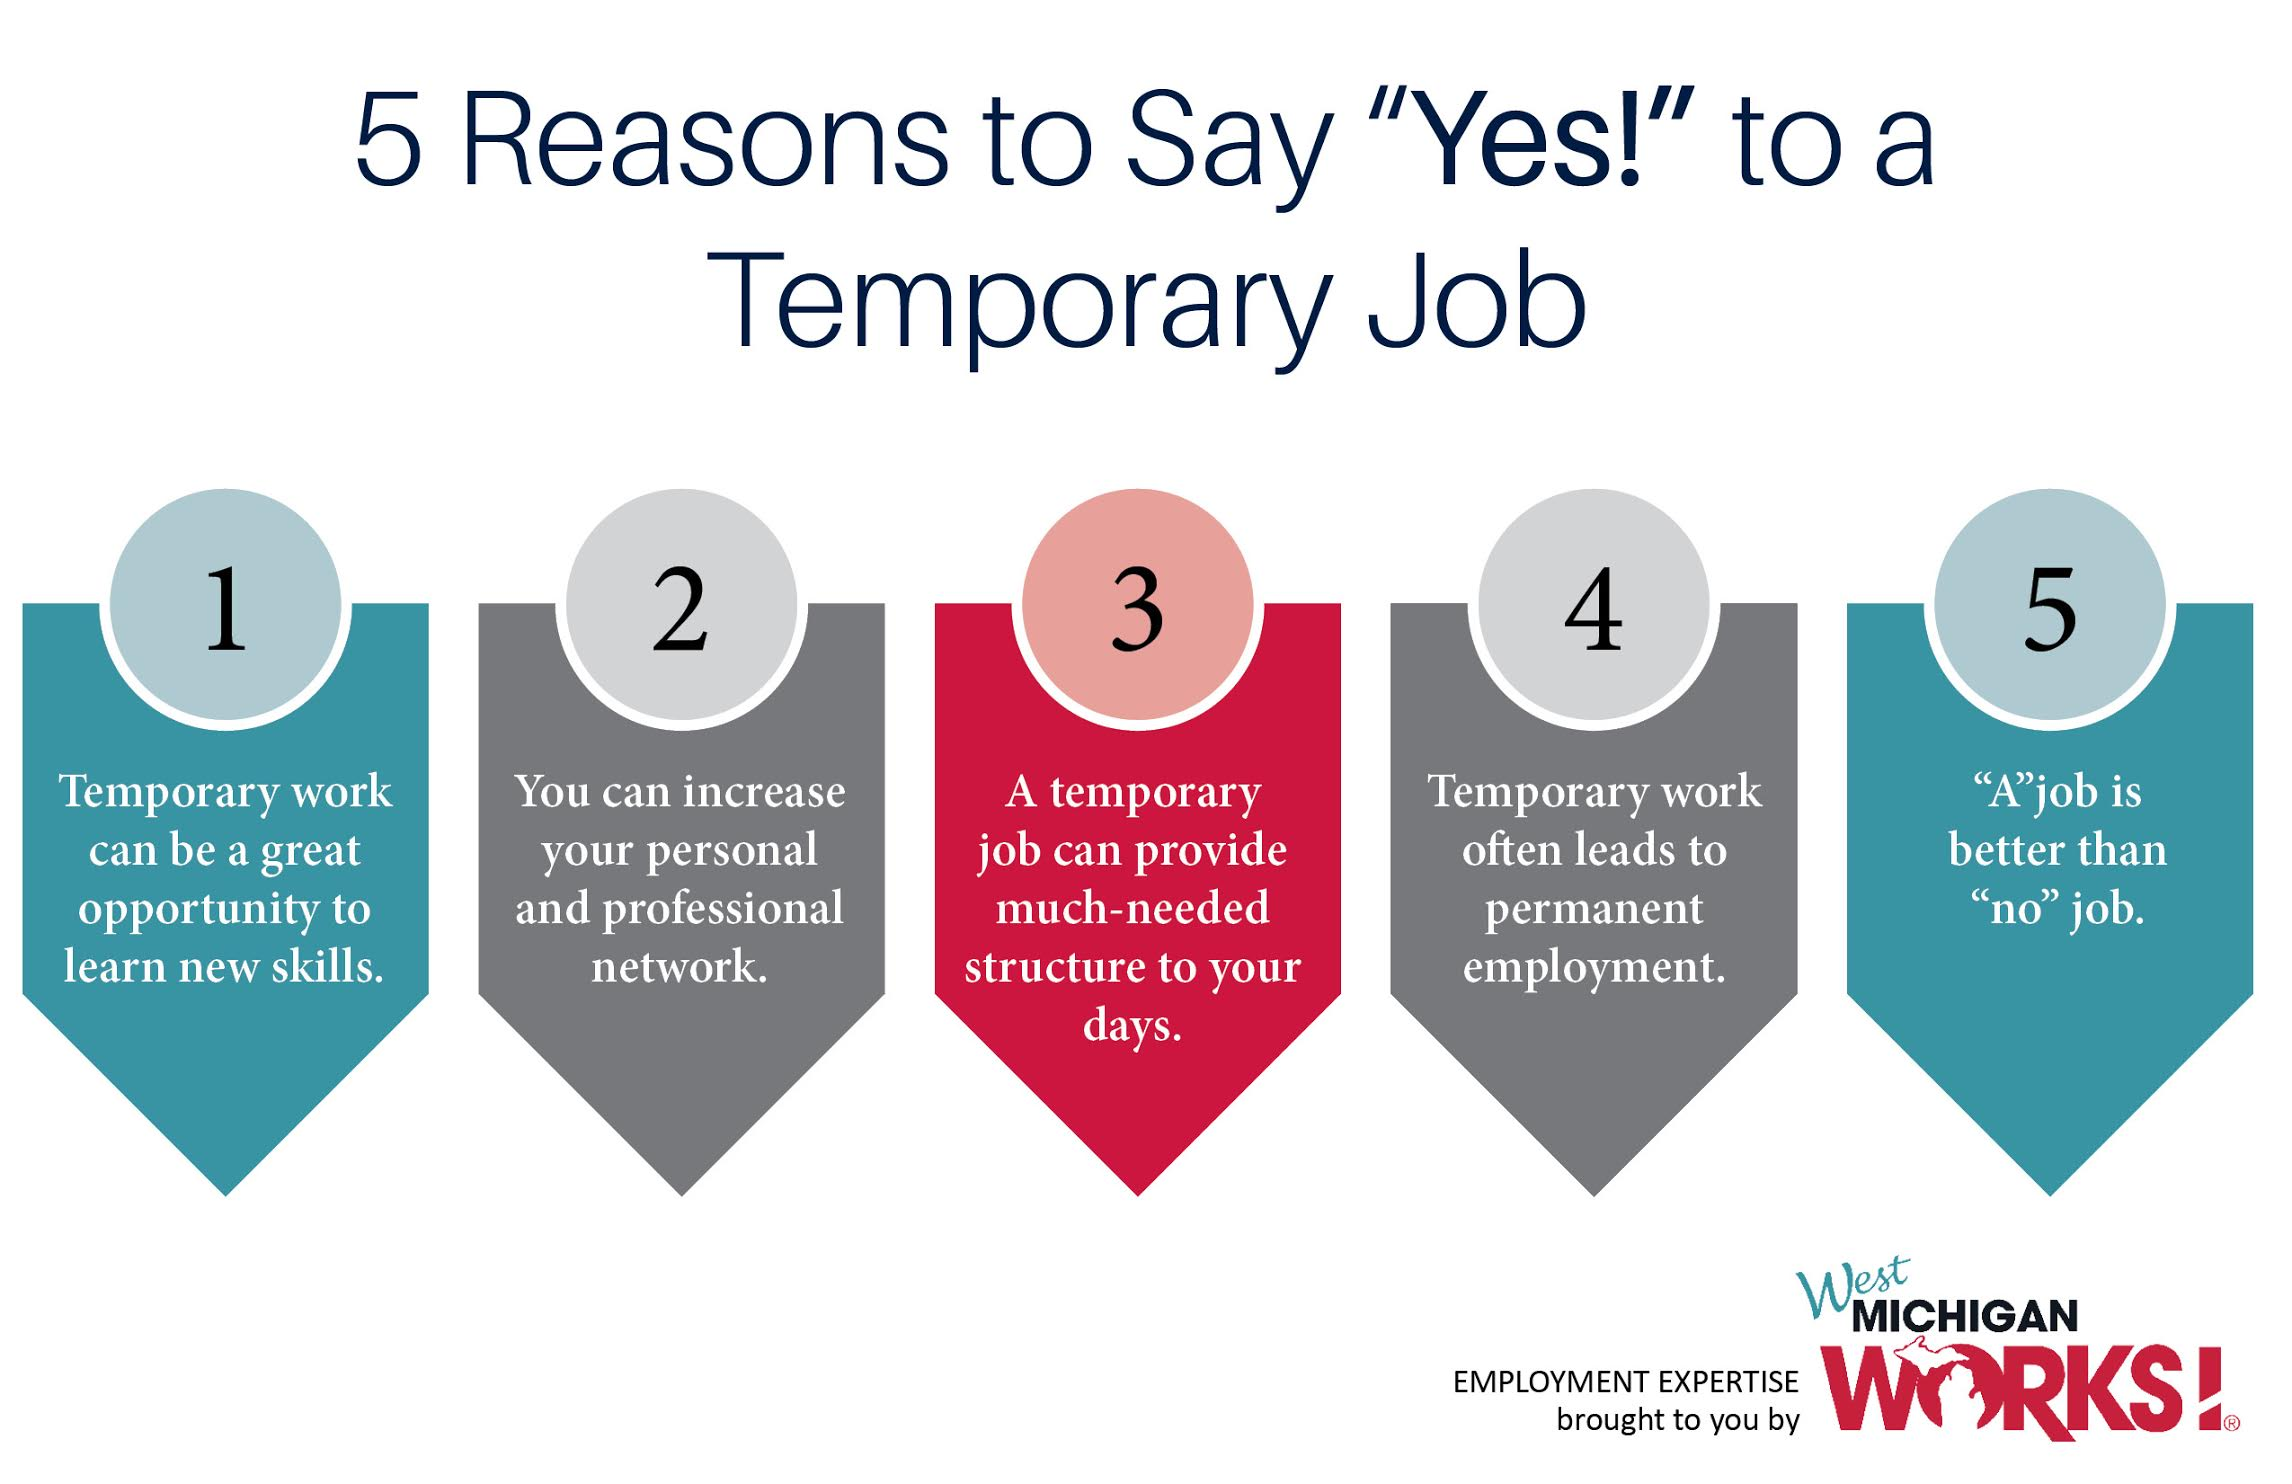 employment expertise 5 reasons to say yes to a temporary job